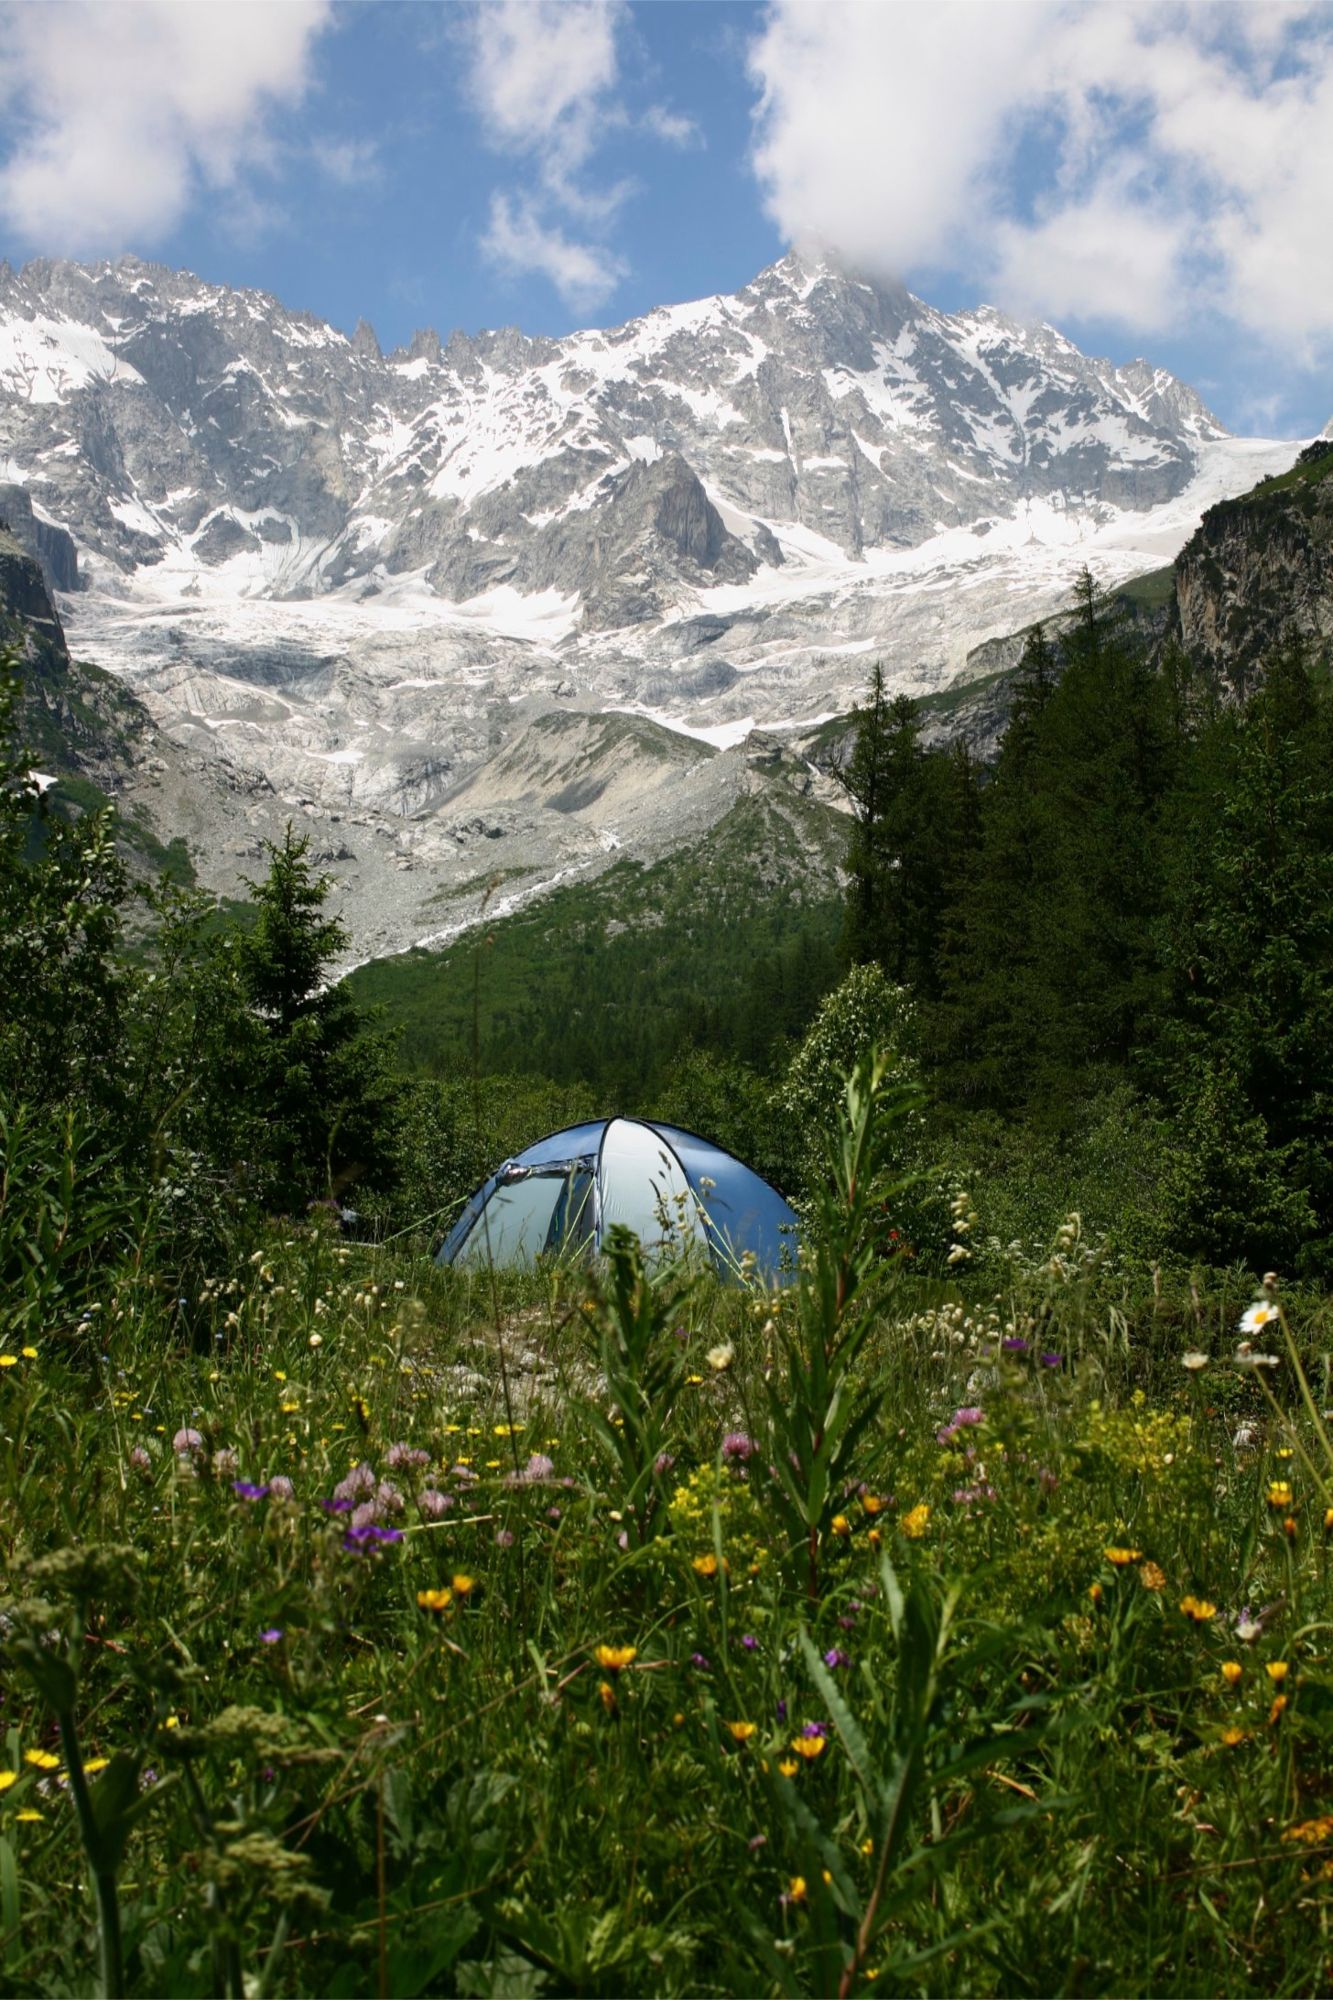 Alpine meadows, forest glades, mountain glaciers, crystal air, wild flowers underfoot, puffy white clouds overhead – this Swiss campsite couldn't be more idyllic.